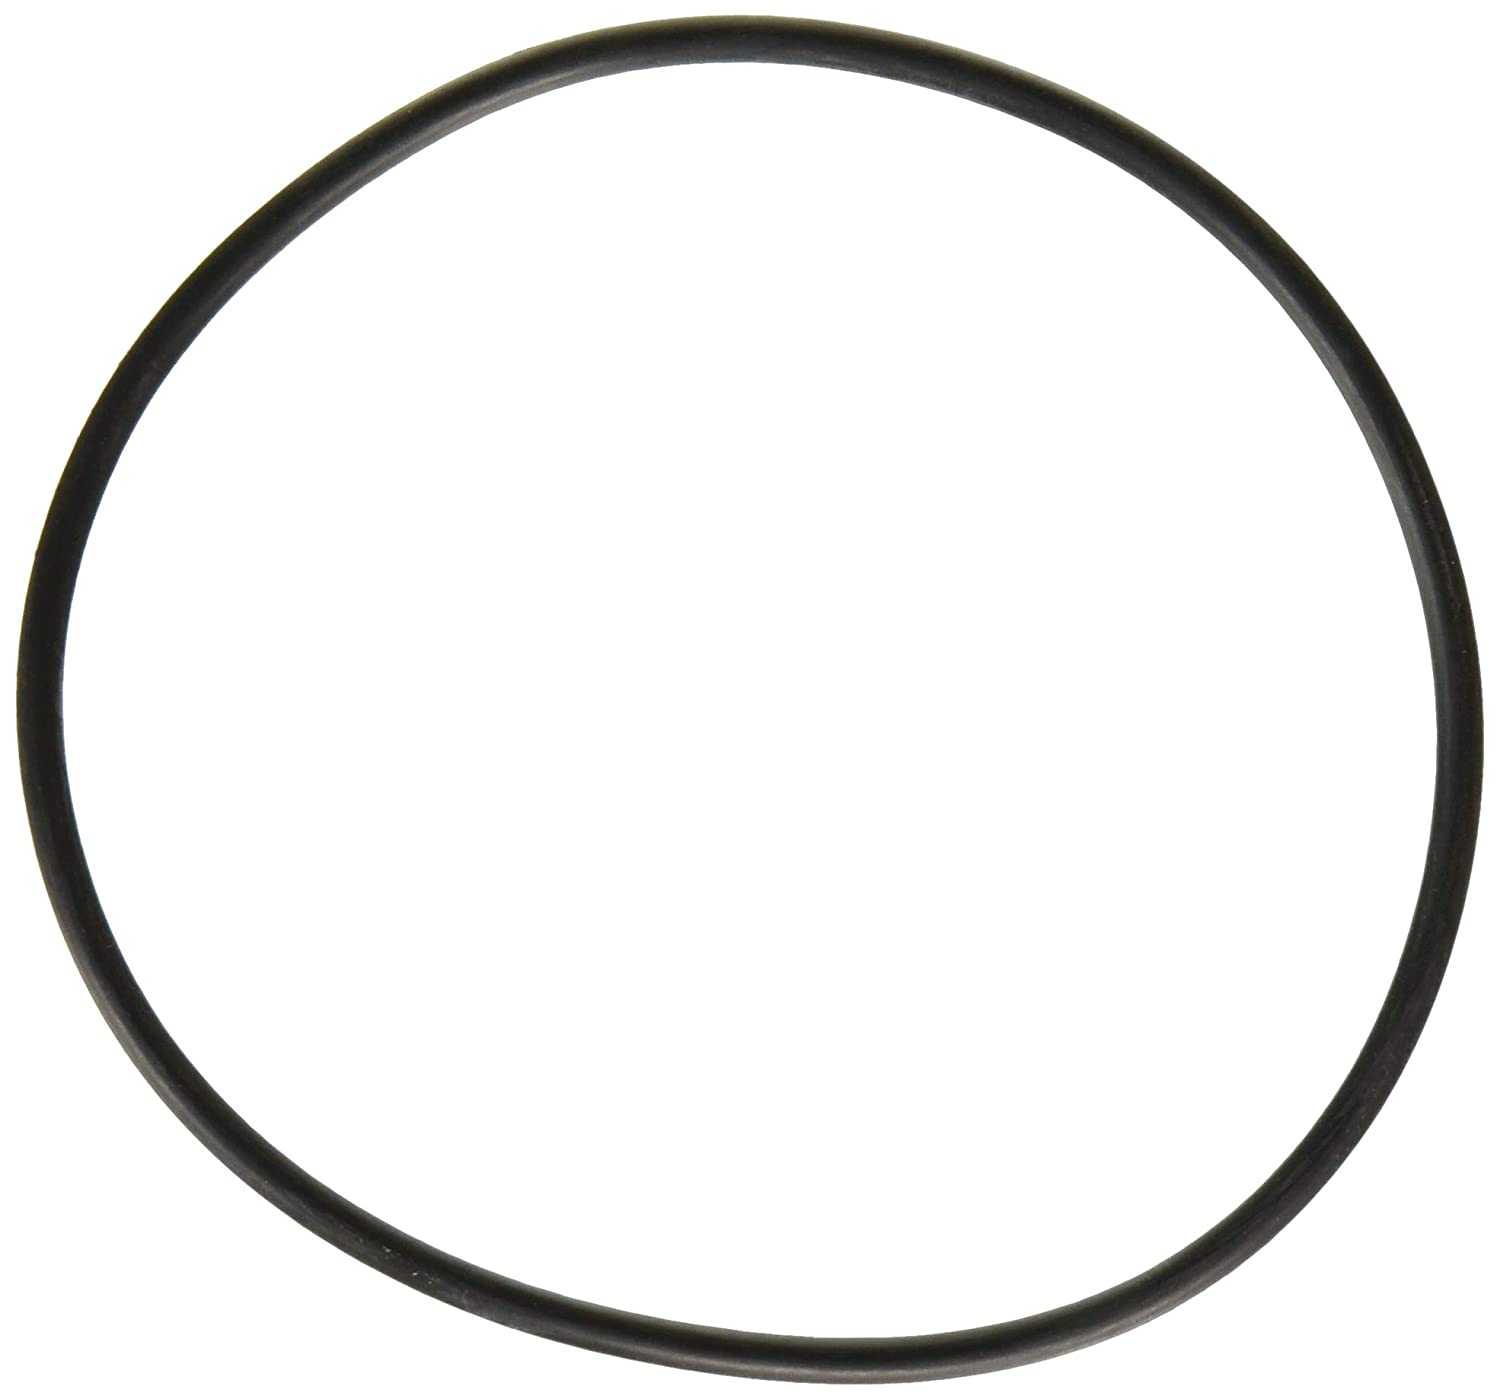 5 Piece Uxcell 120mm Od 4mm Cross Section Rubber Sealing Oil Filter O Rings